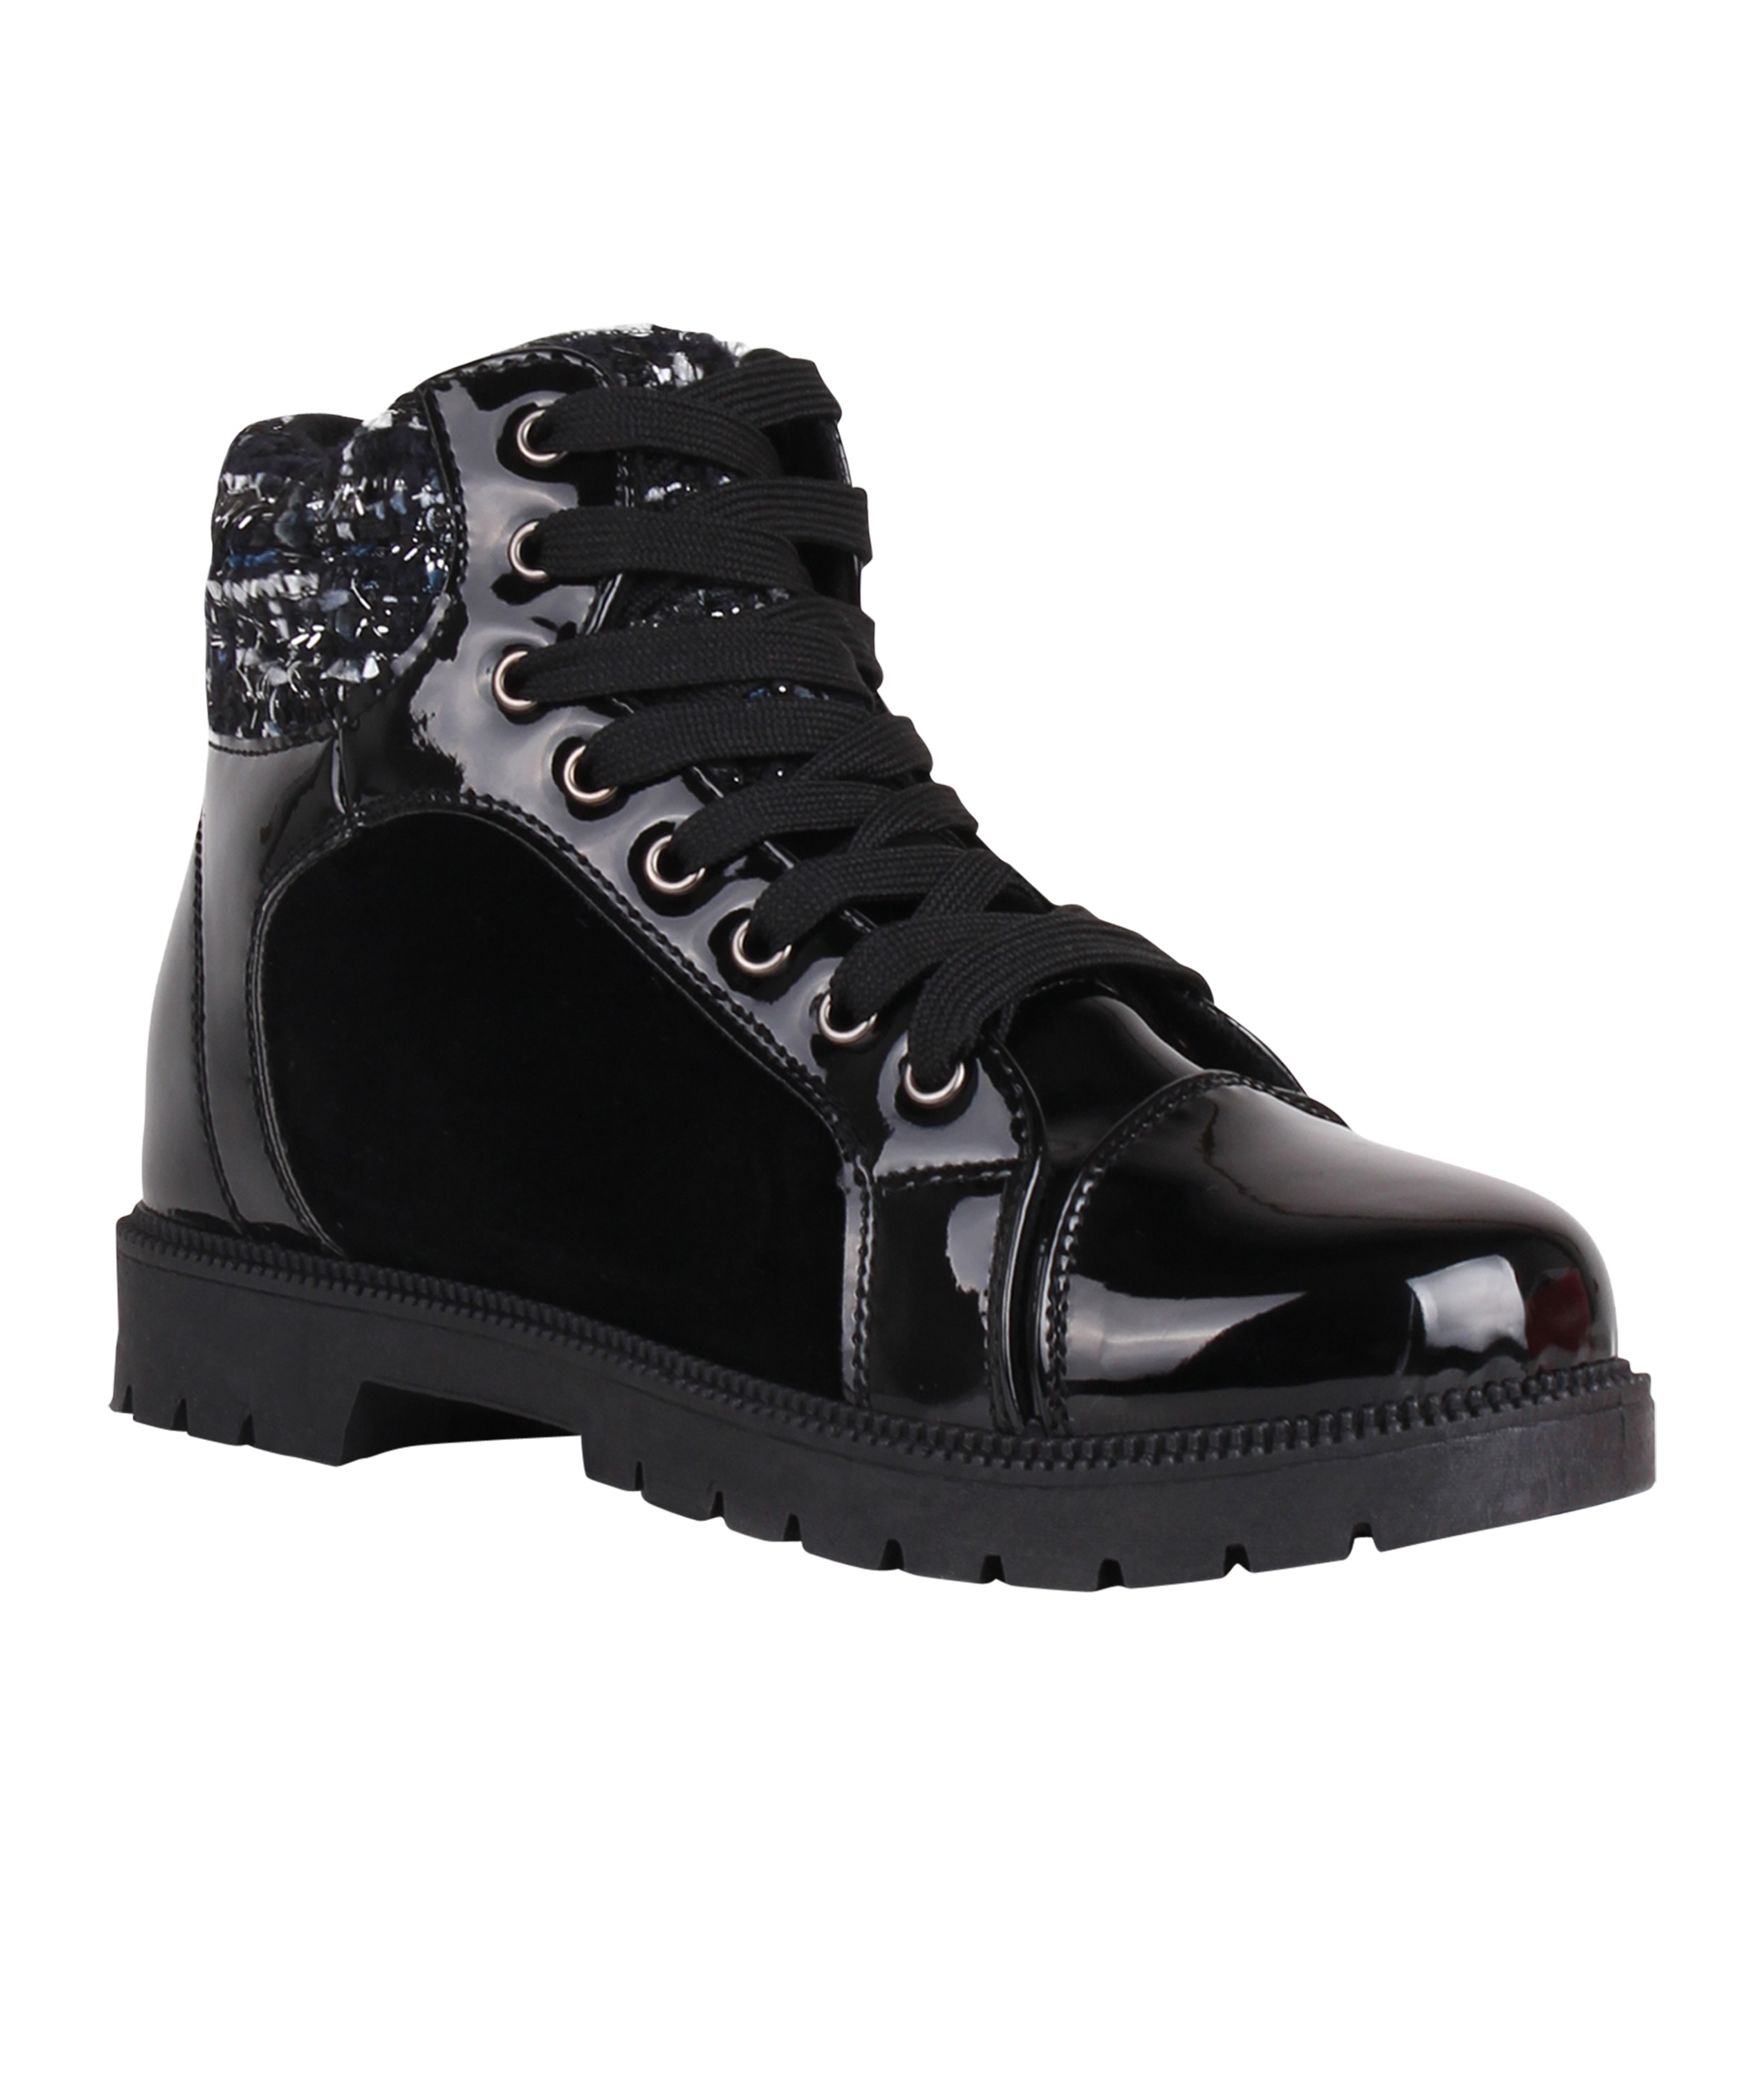 femmes bottines boots vernis uni talon bloc sneakers montantes cuir daim chaussure d 39 exterieur. Black Bedroom Furniture Sets. Home Design Ideas